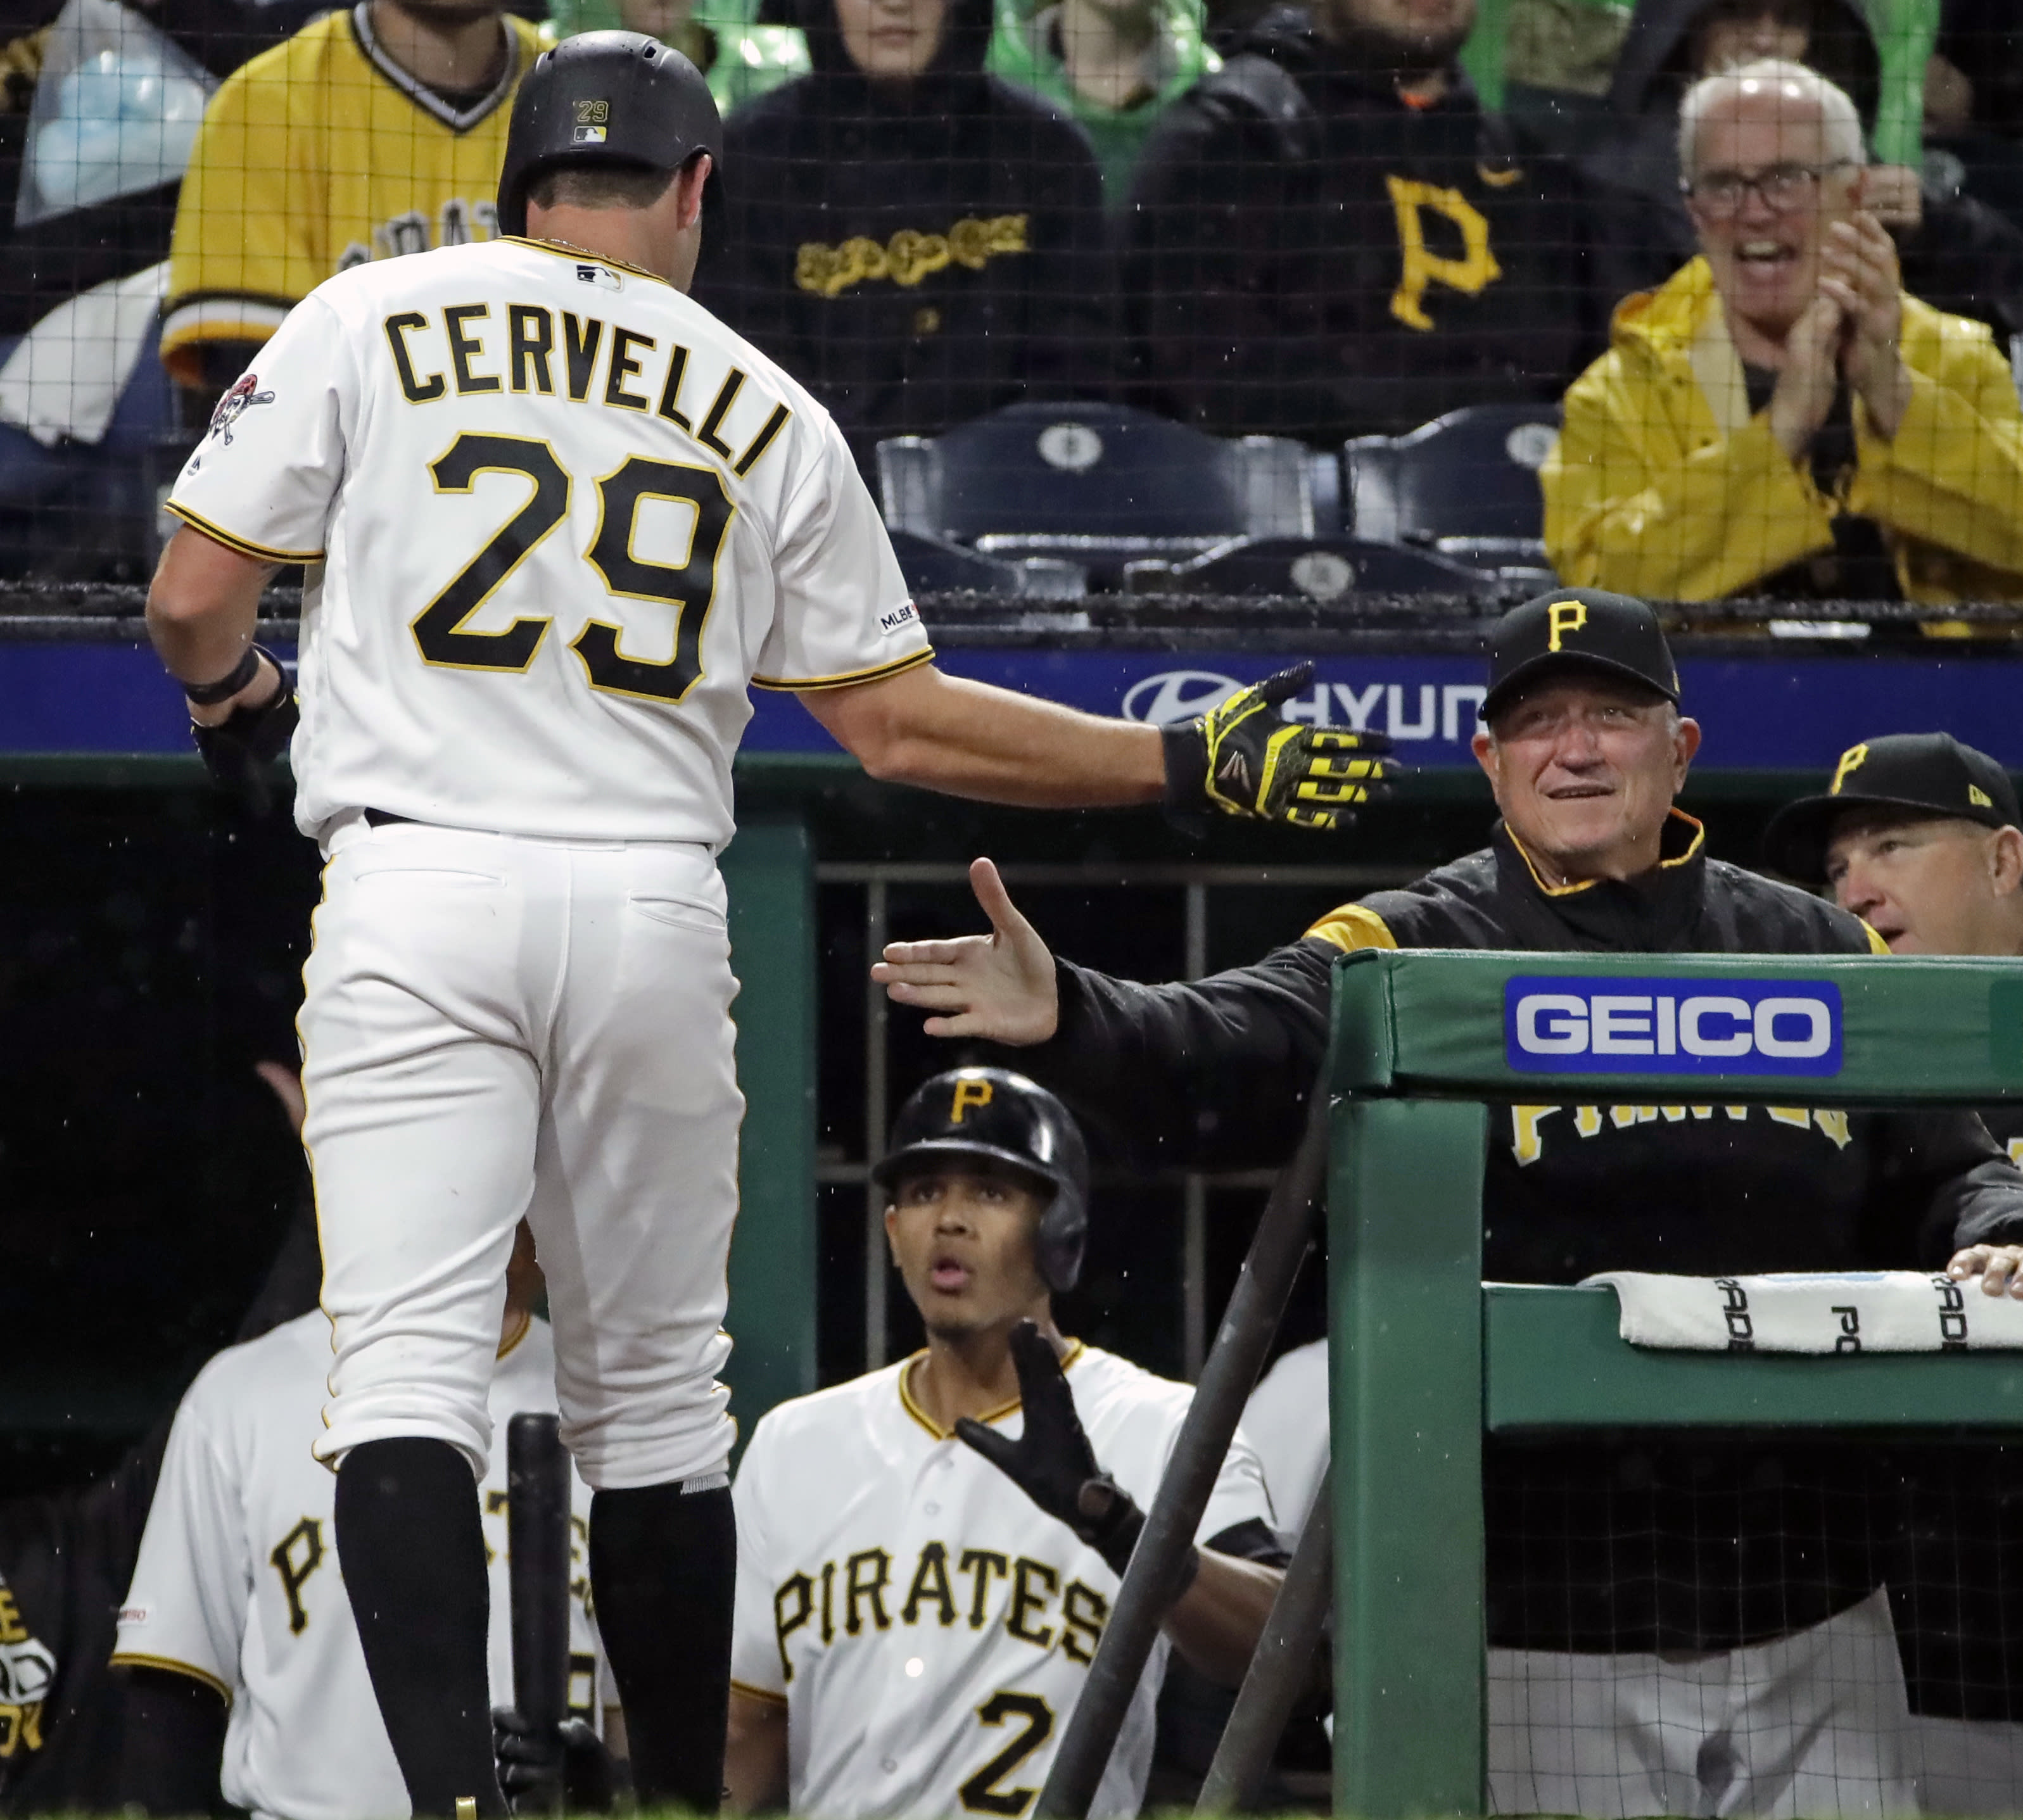 d1bf5358 Lyles, Marte, González injured in Pirates' win over Giants